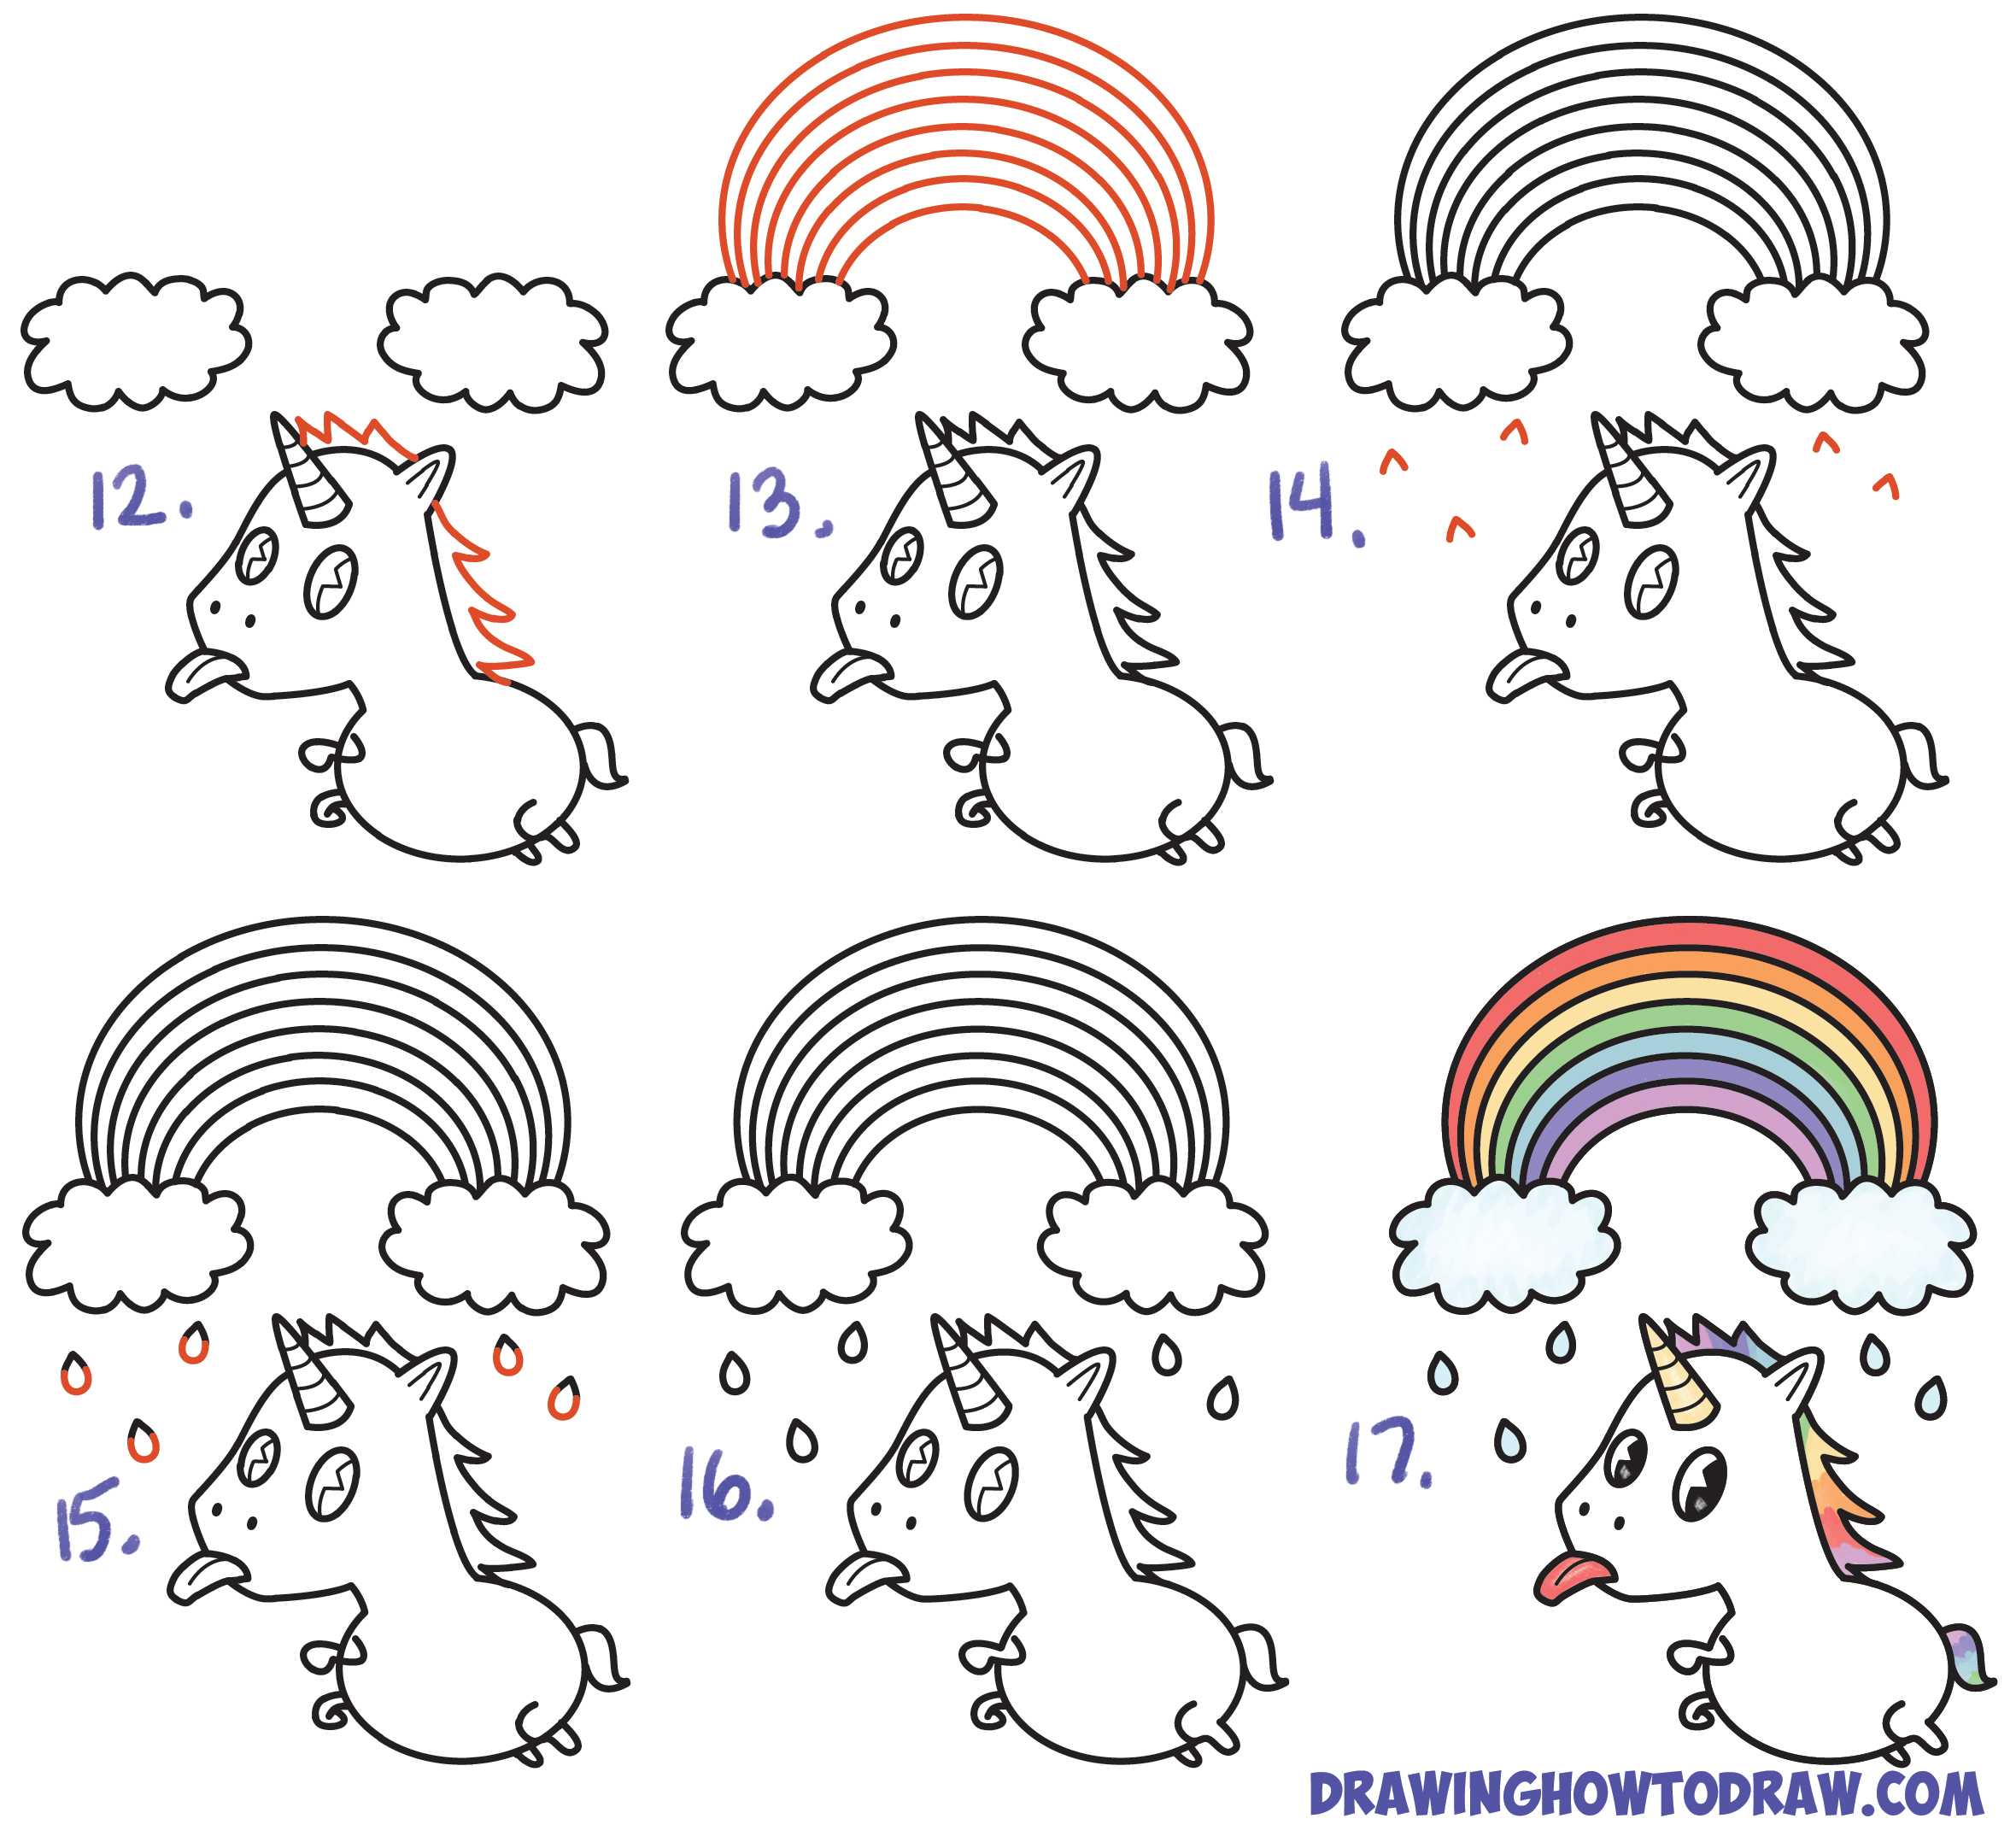 2360x2156 How To Draw A Cute Kawaii Unicorn With Tongue Out Under Rainbow